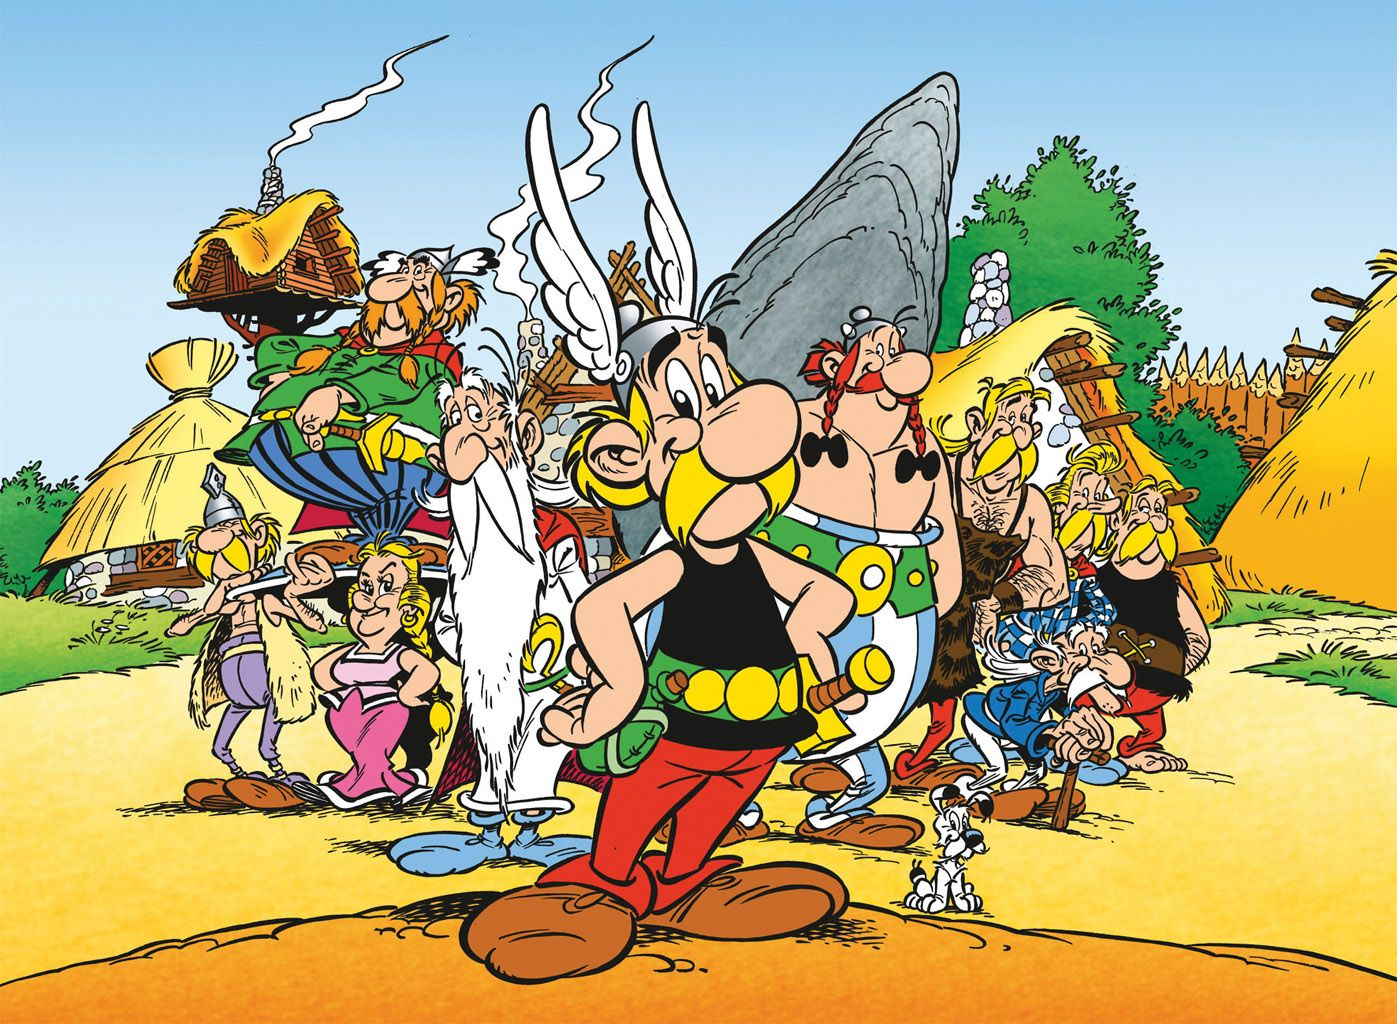 Asterix y los pictos online dating